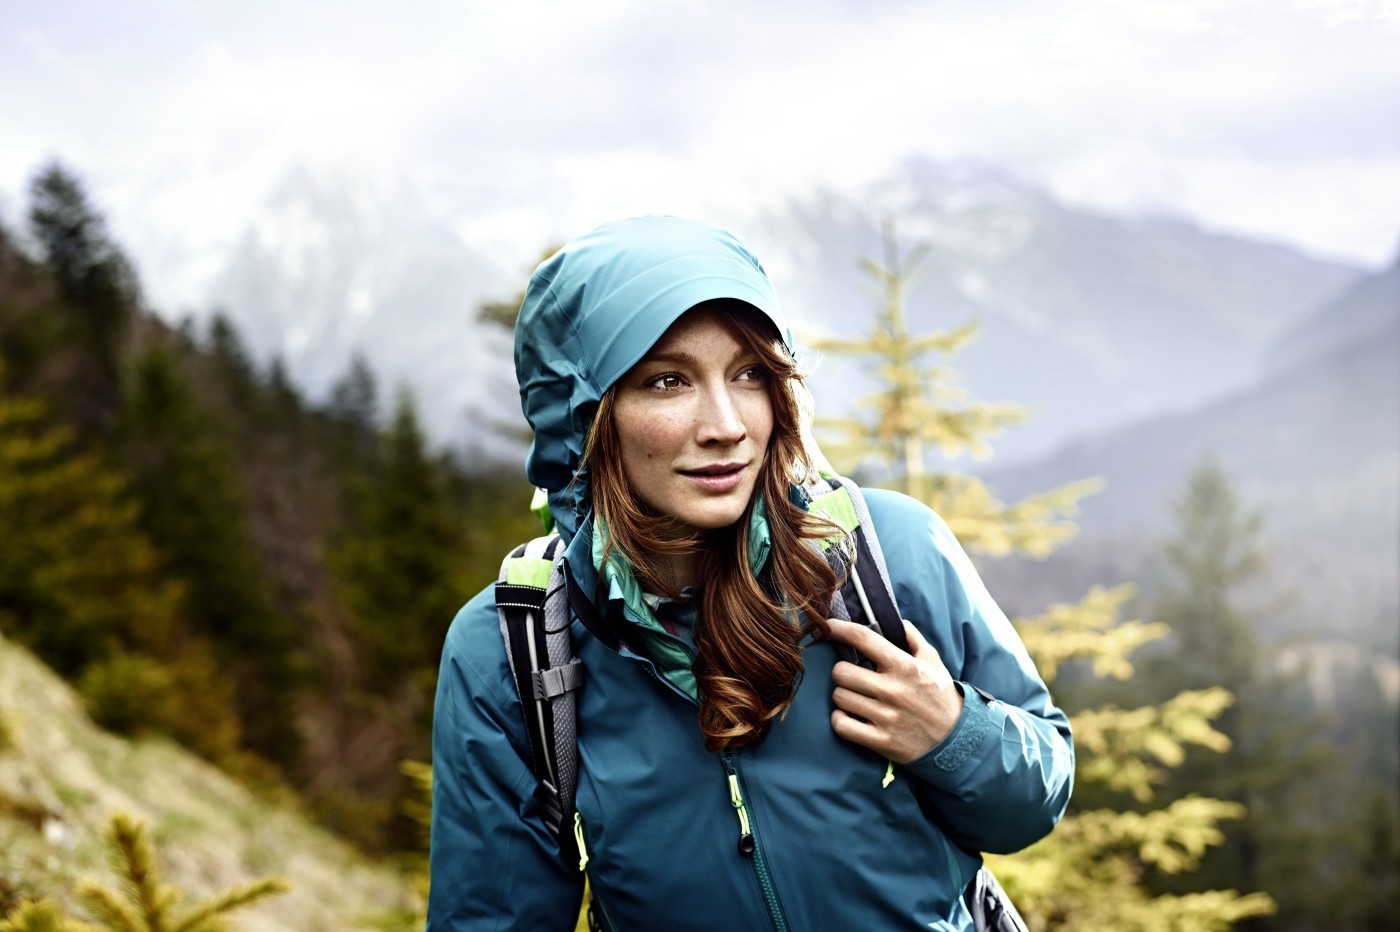 BIC_female_hiker_1400